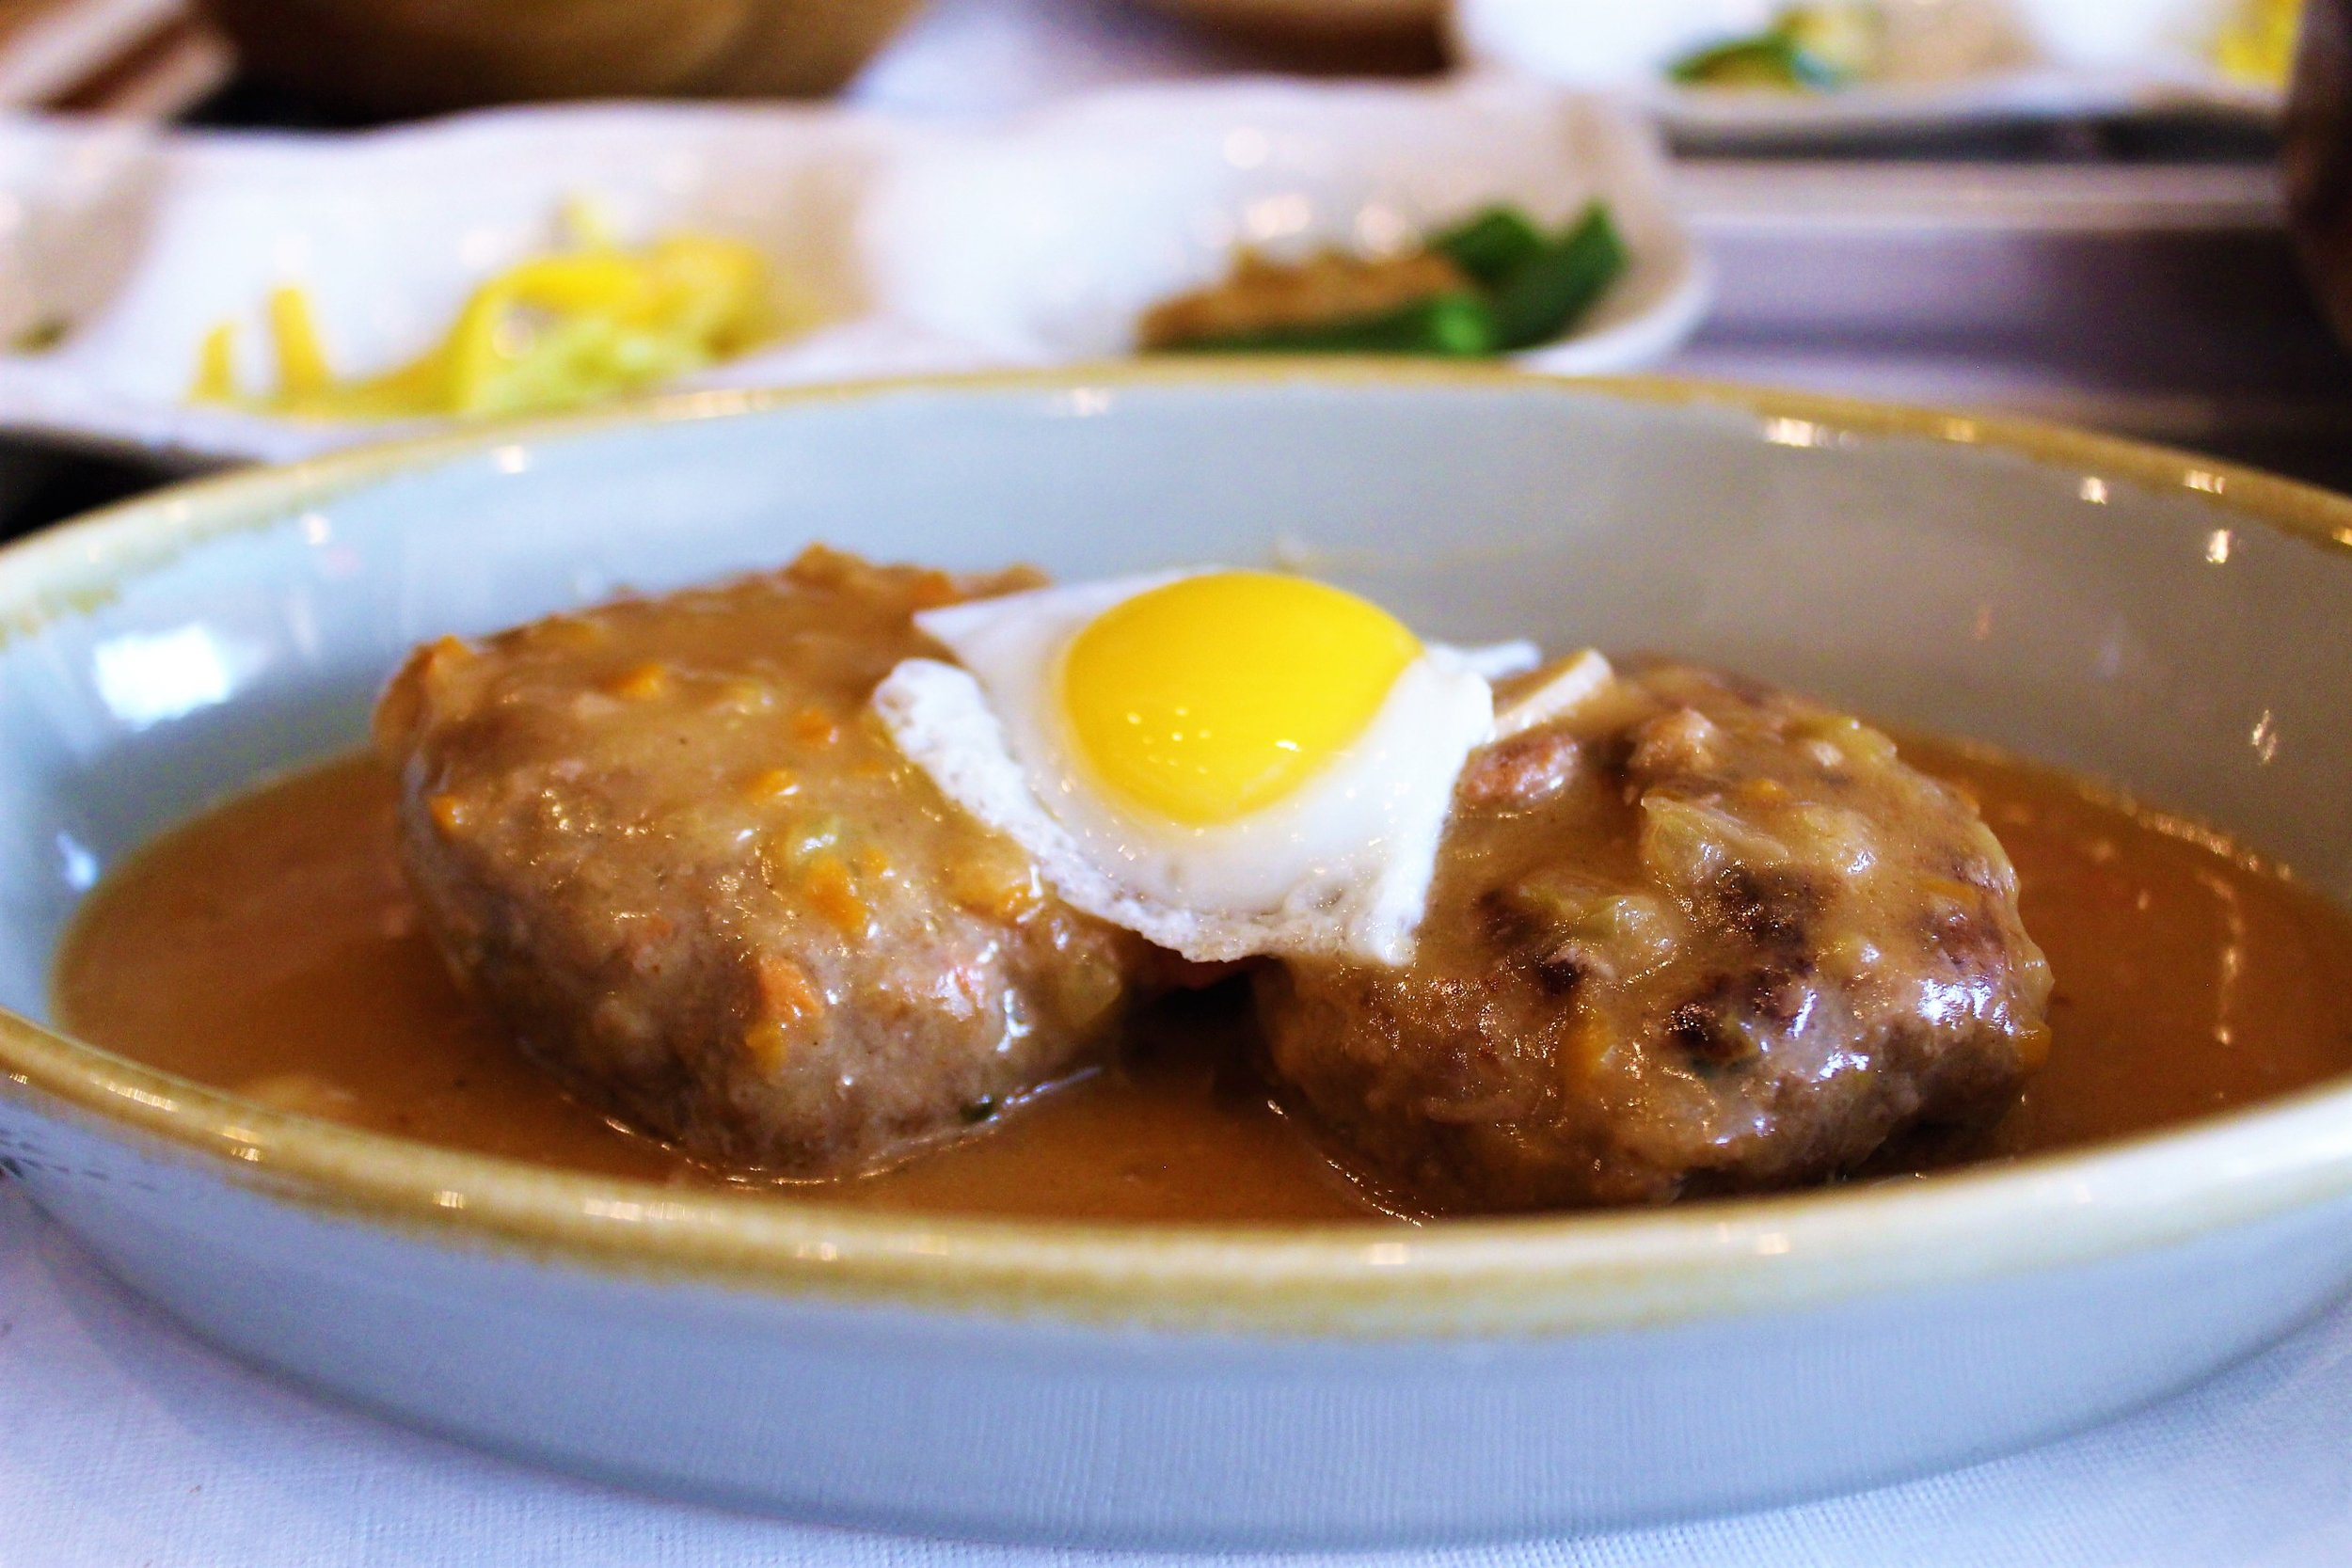 Hamburger Steak with Quail Egg at Her Name is Han in New York City